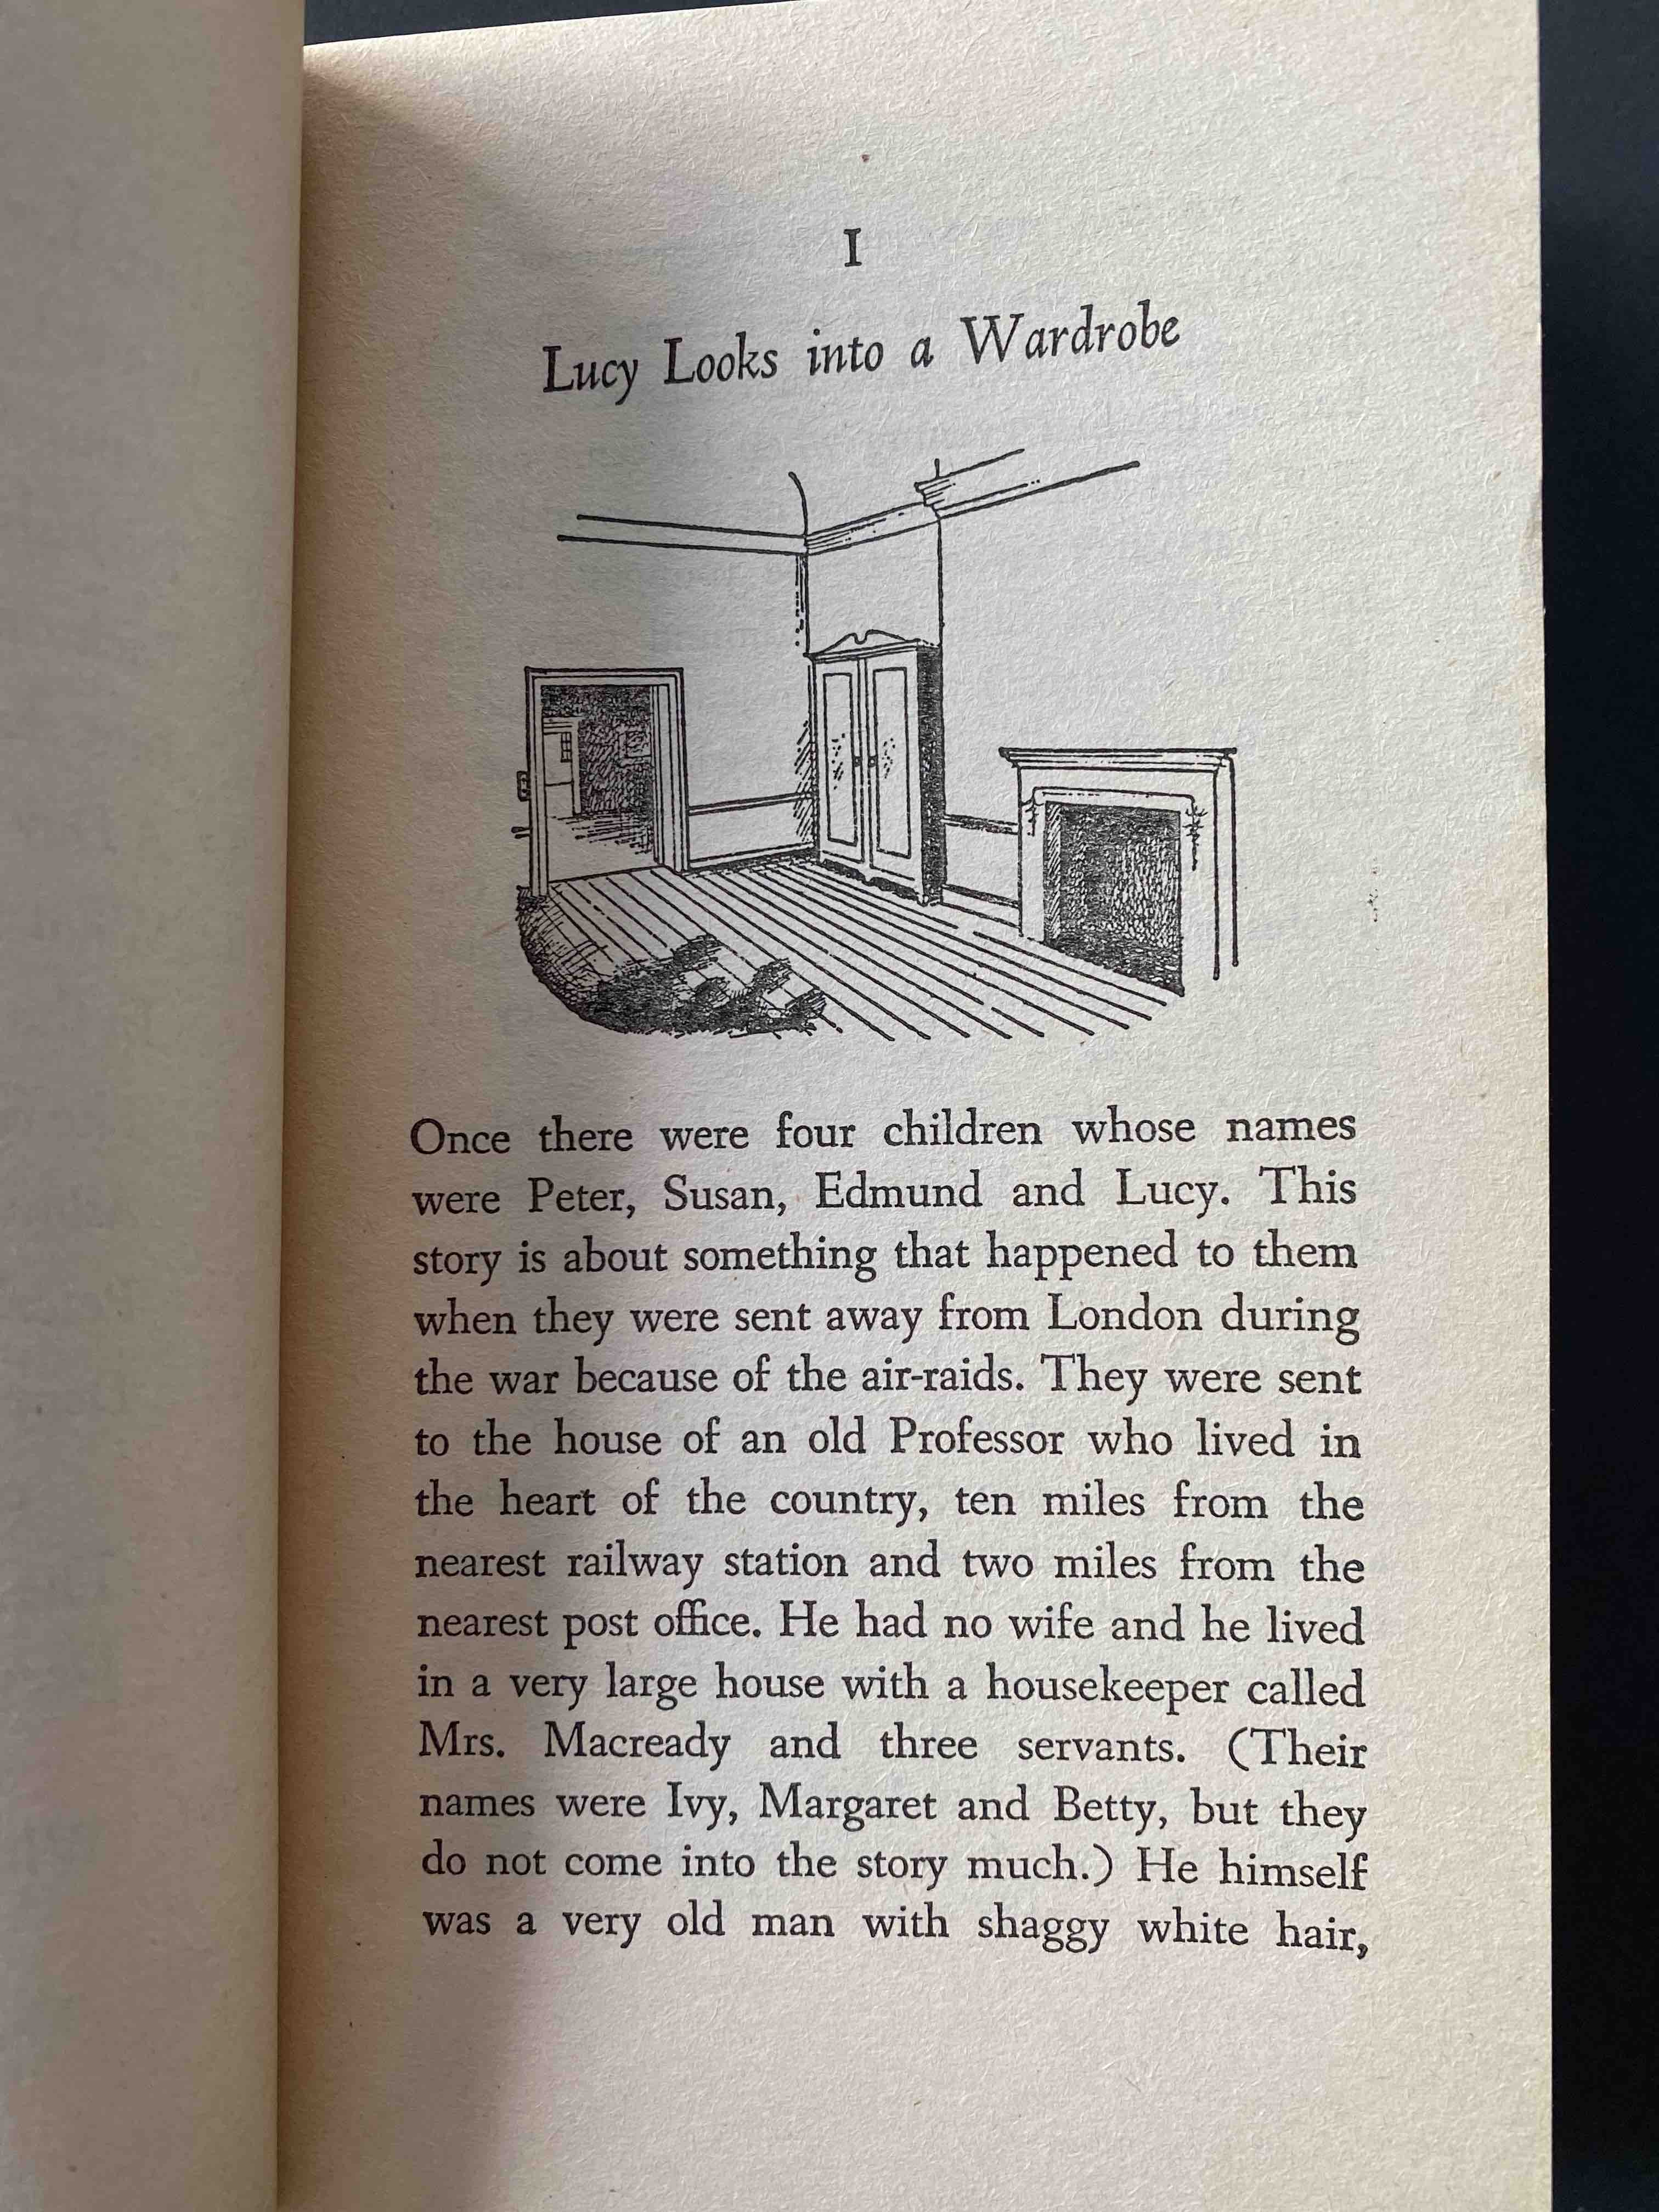 C.S. Lewis, The Lion, the Witch, and the Wardrobe. First page.